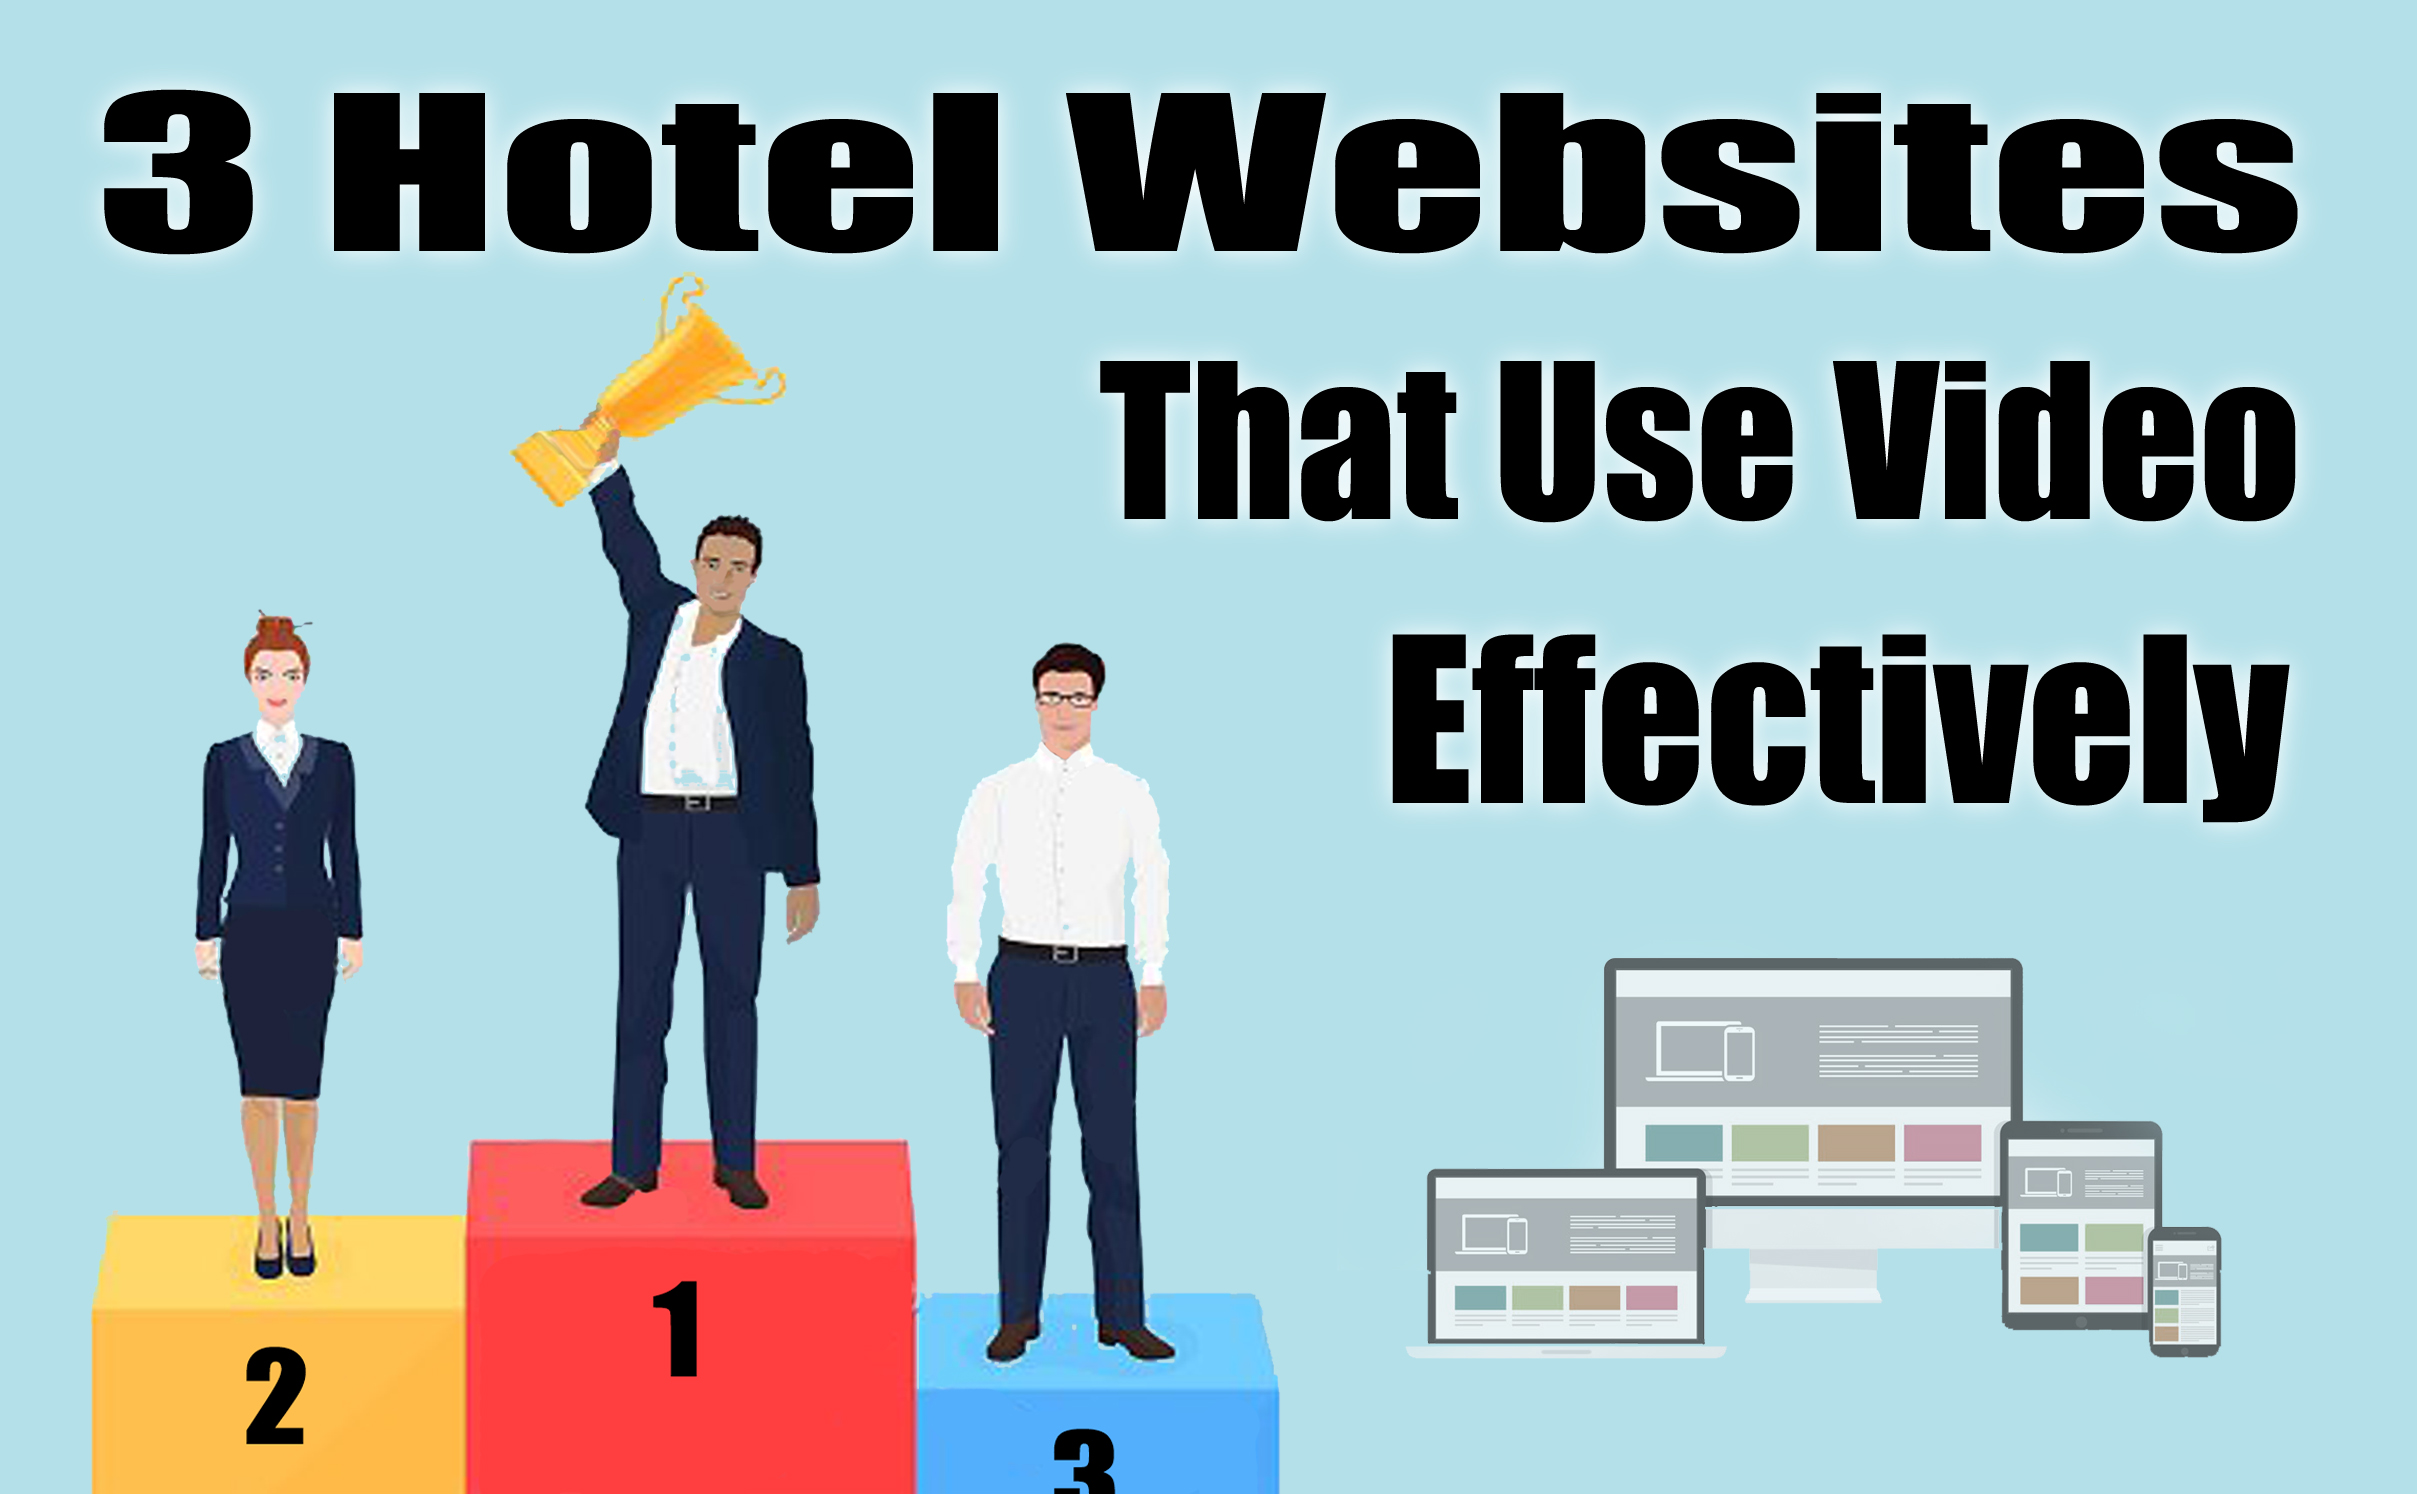 3 Hotel Websites That Use Video Effectively